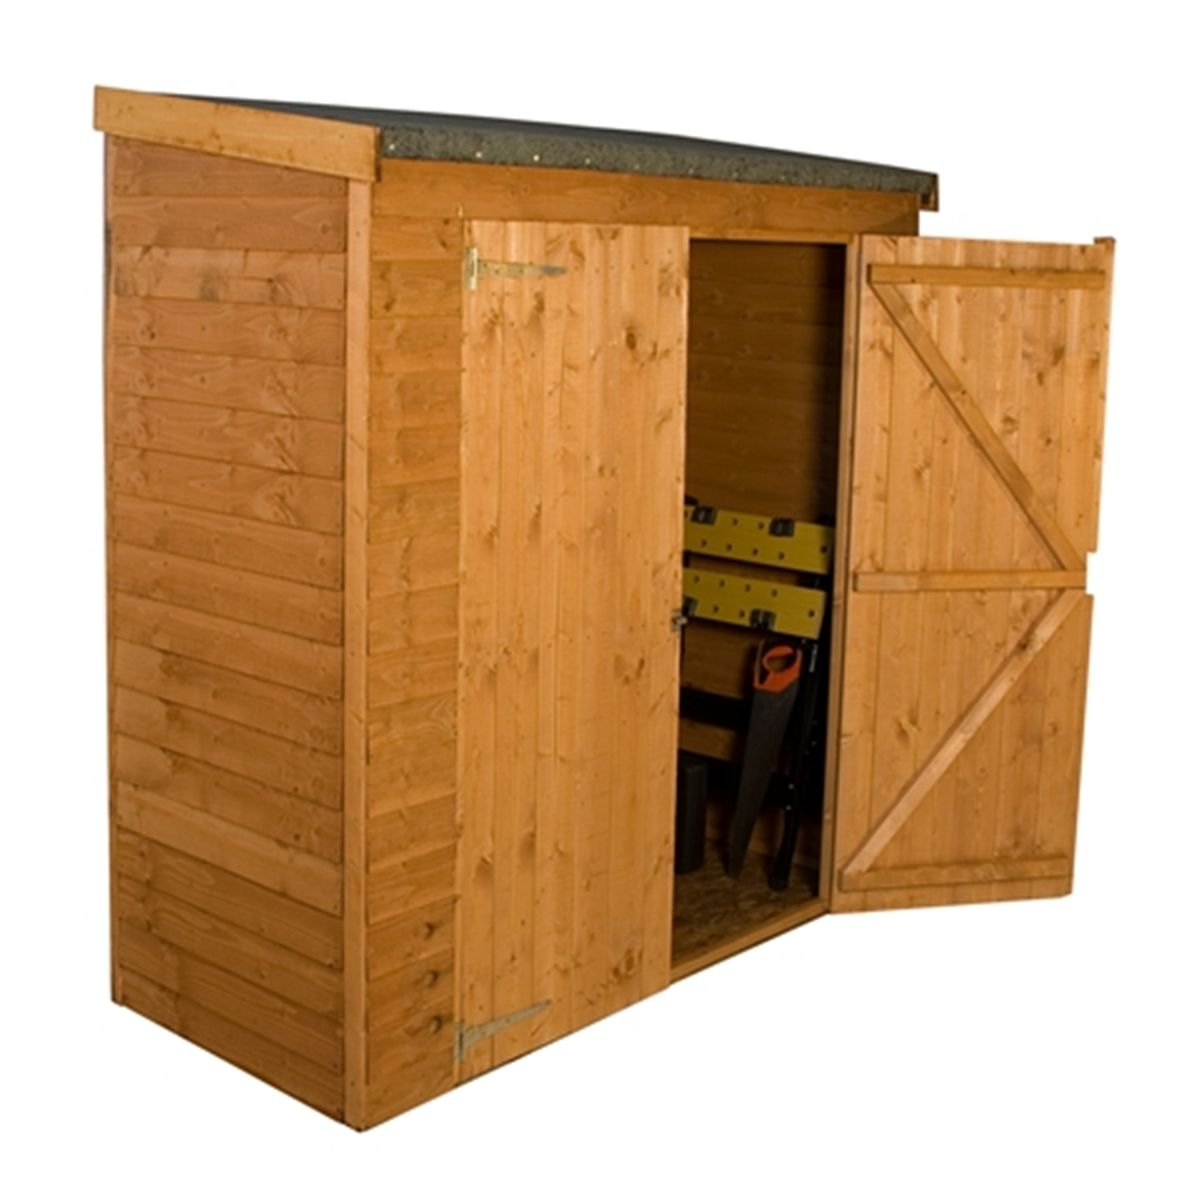 Garden Sheds 6 X 6 6 x 2'6 value pent storage shed | tiny sheds | pinterest | storage